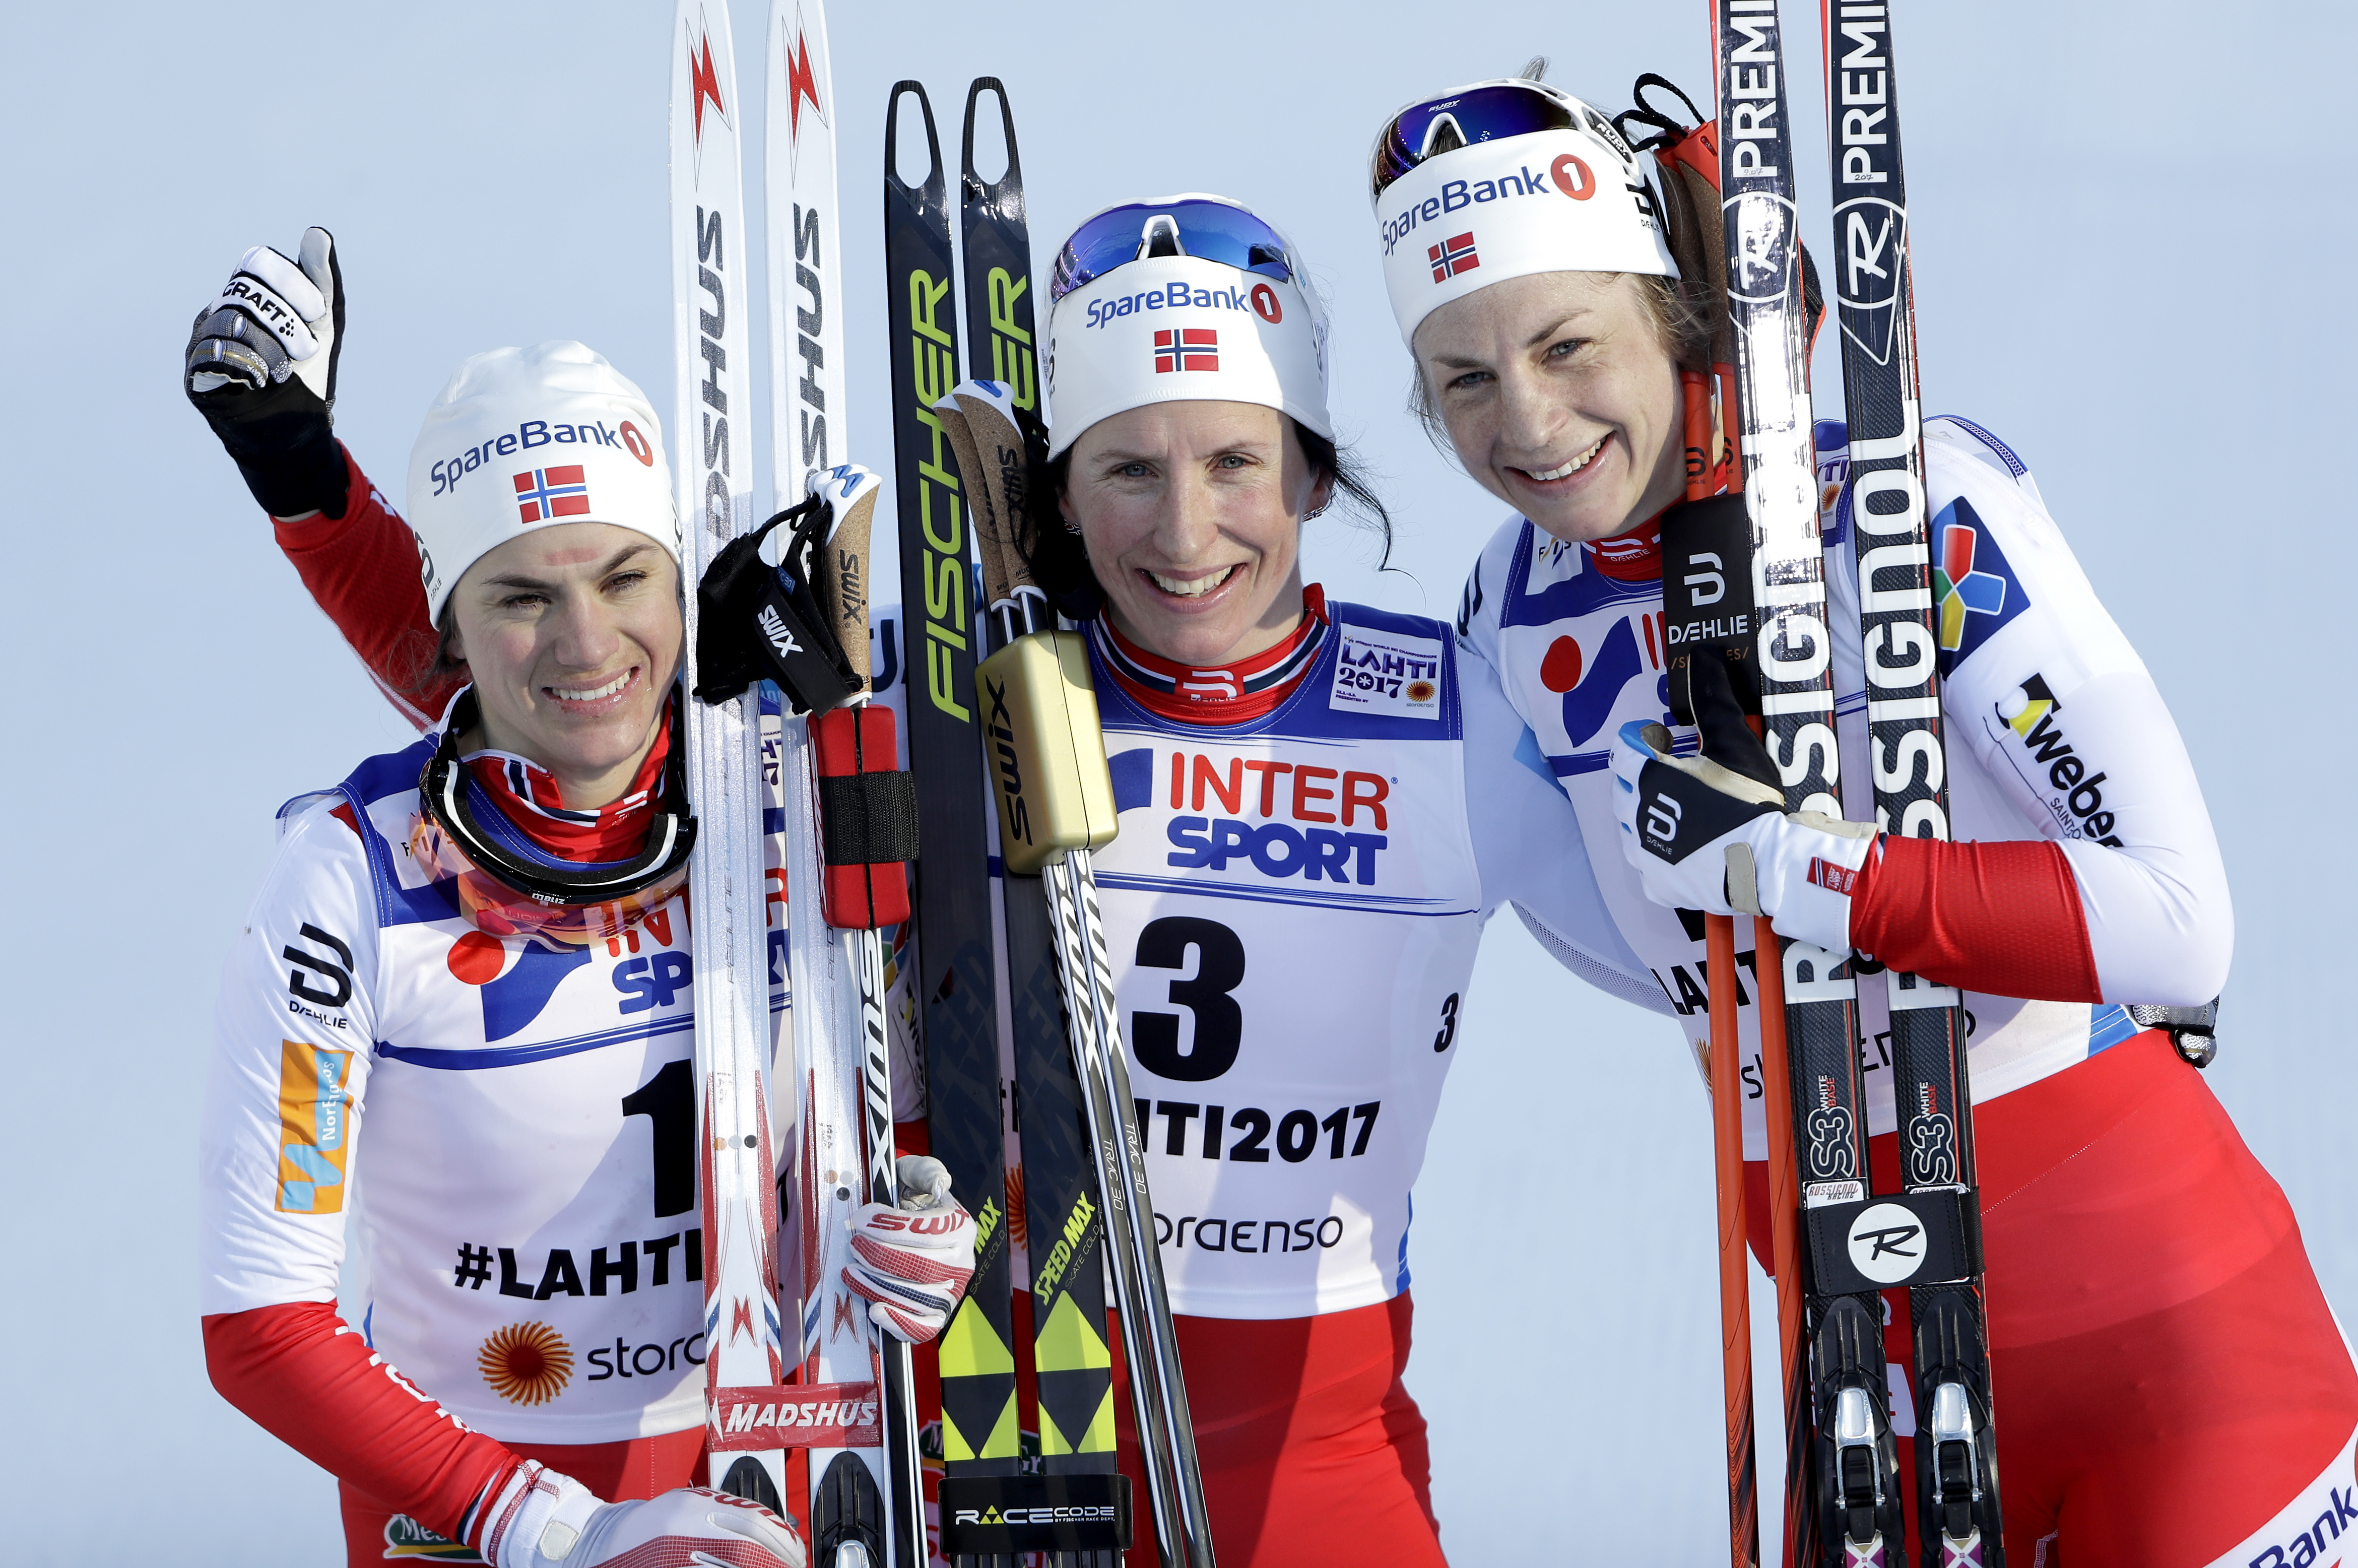 From left, second placed Norway's HeidiWeng, first placed Norway's MaritBjoergen and third placed Norway's Astrid Uhrenholdt Jacobsen pose for the media after the women's cross country 30 km mass start free competition at the 2017 Nordic Skiing World Cham